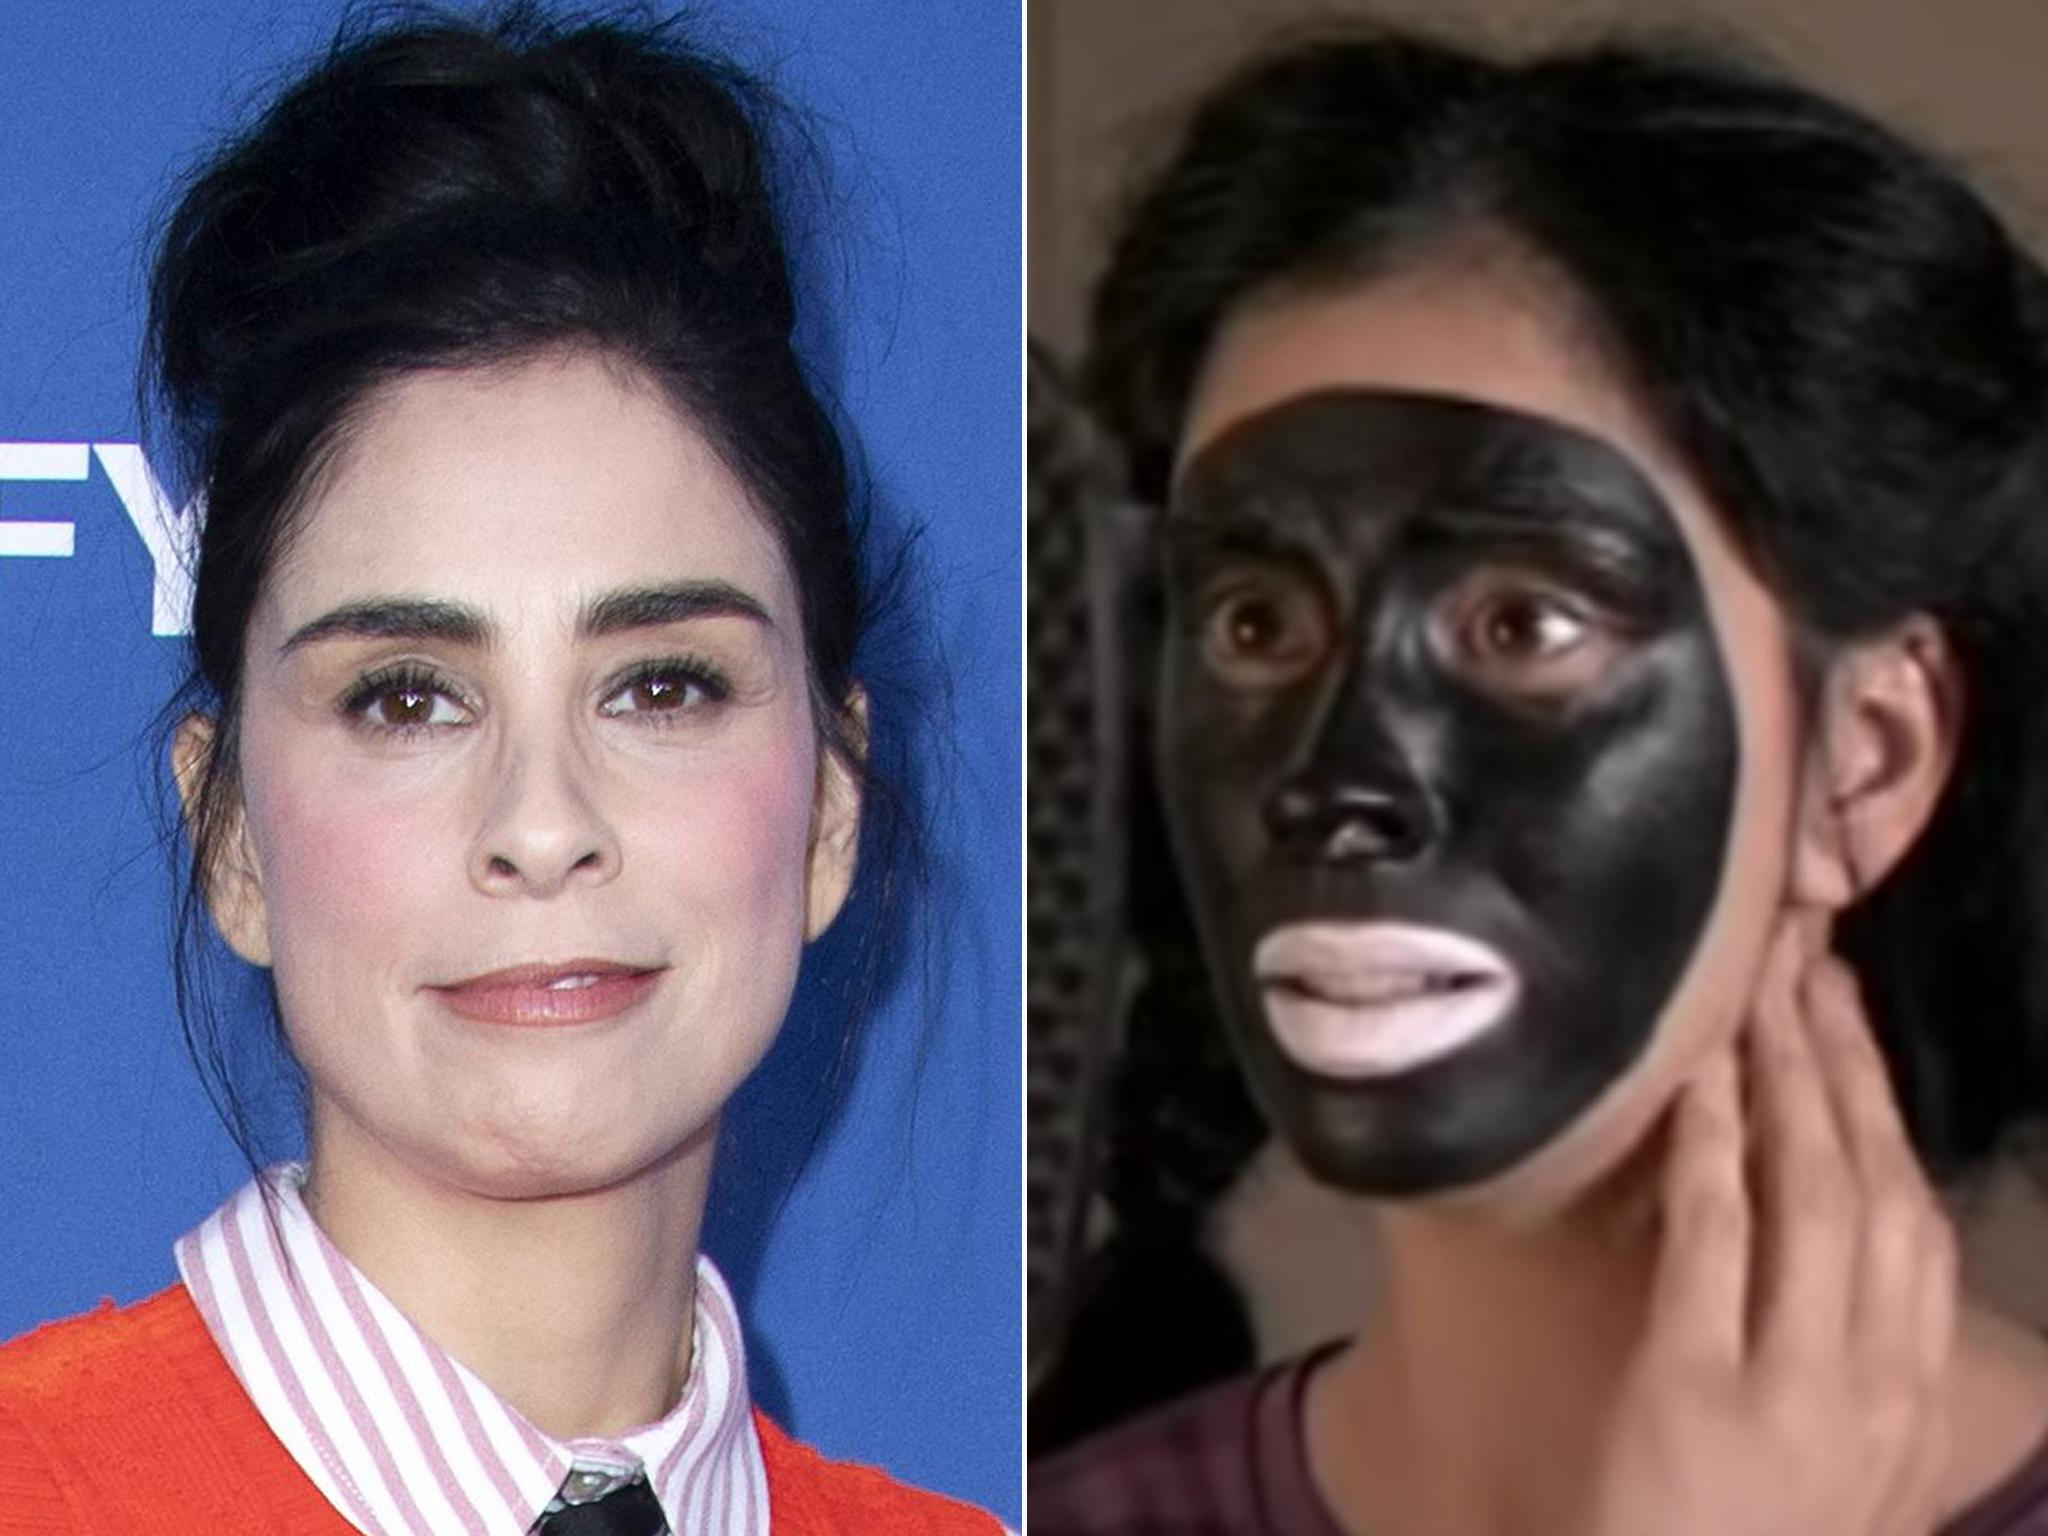 Sarah Silverman still doesn't get how to talk about blackface